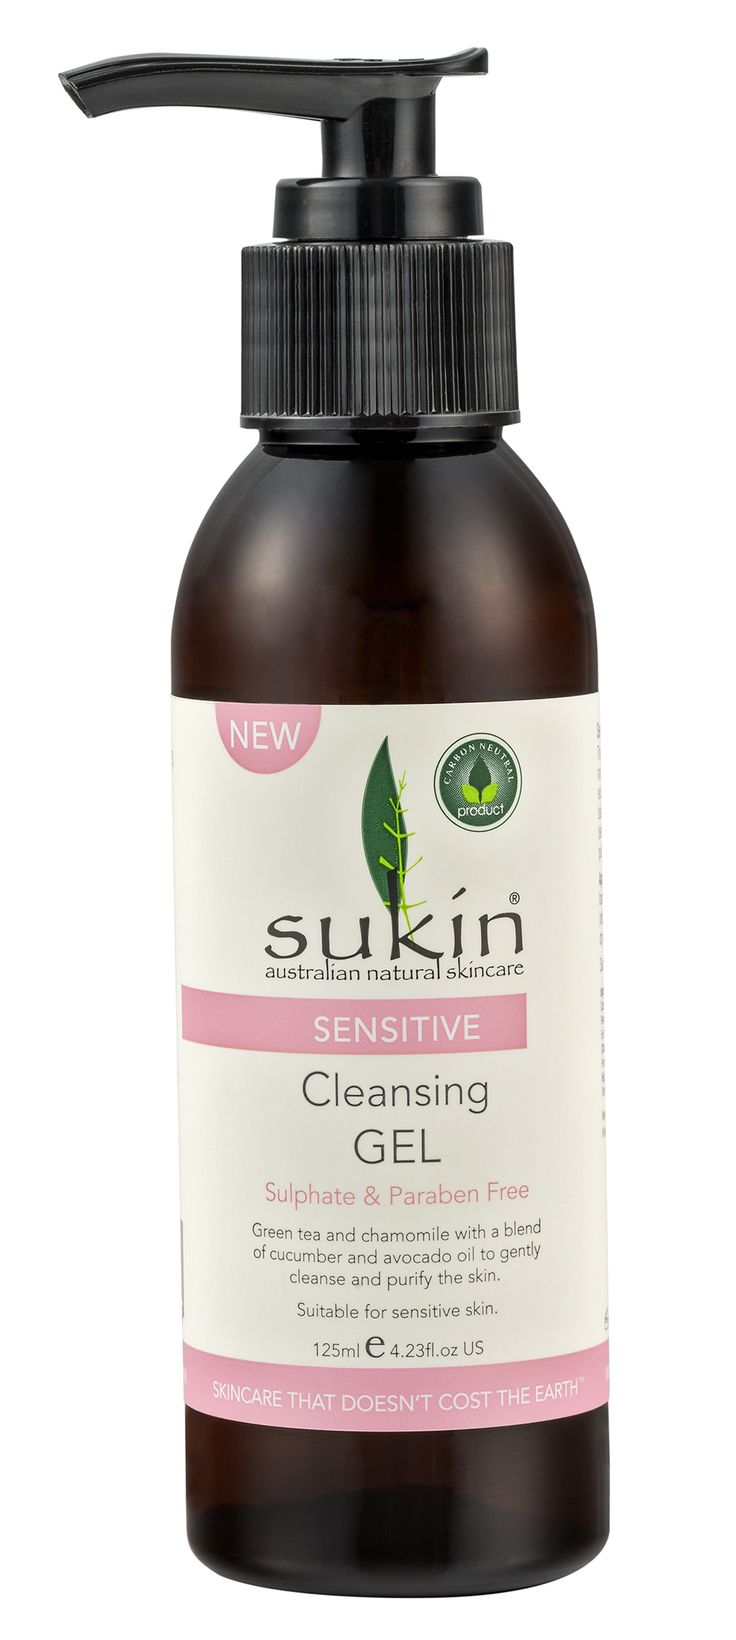 Sukin Sensitive Cleansing Gel